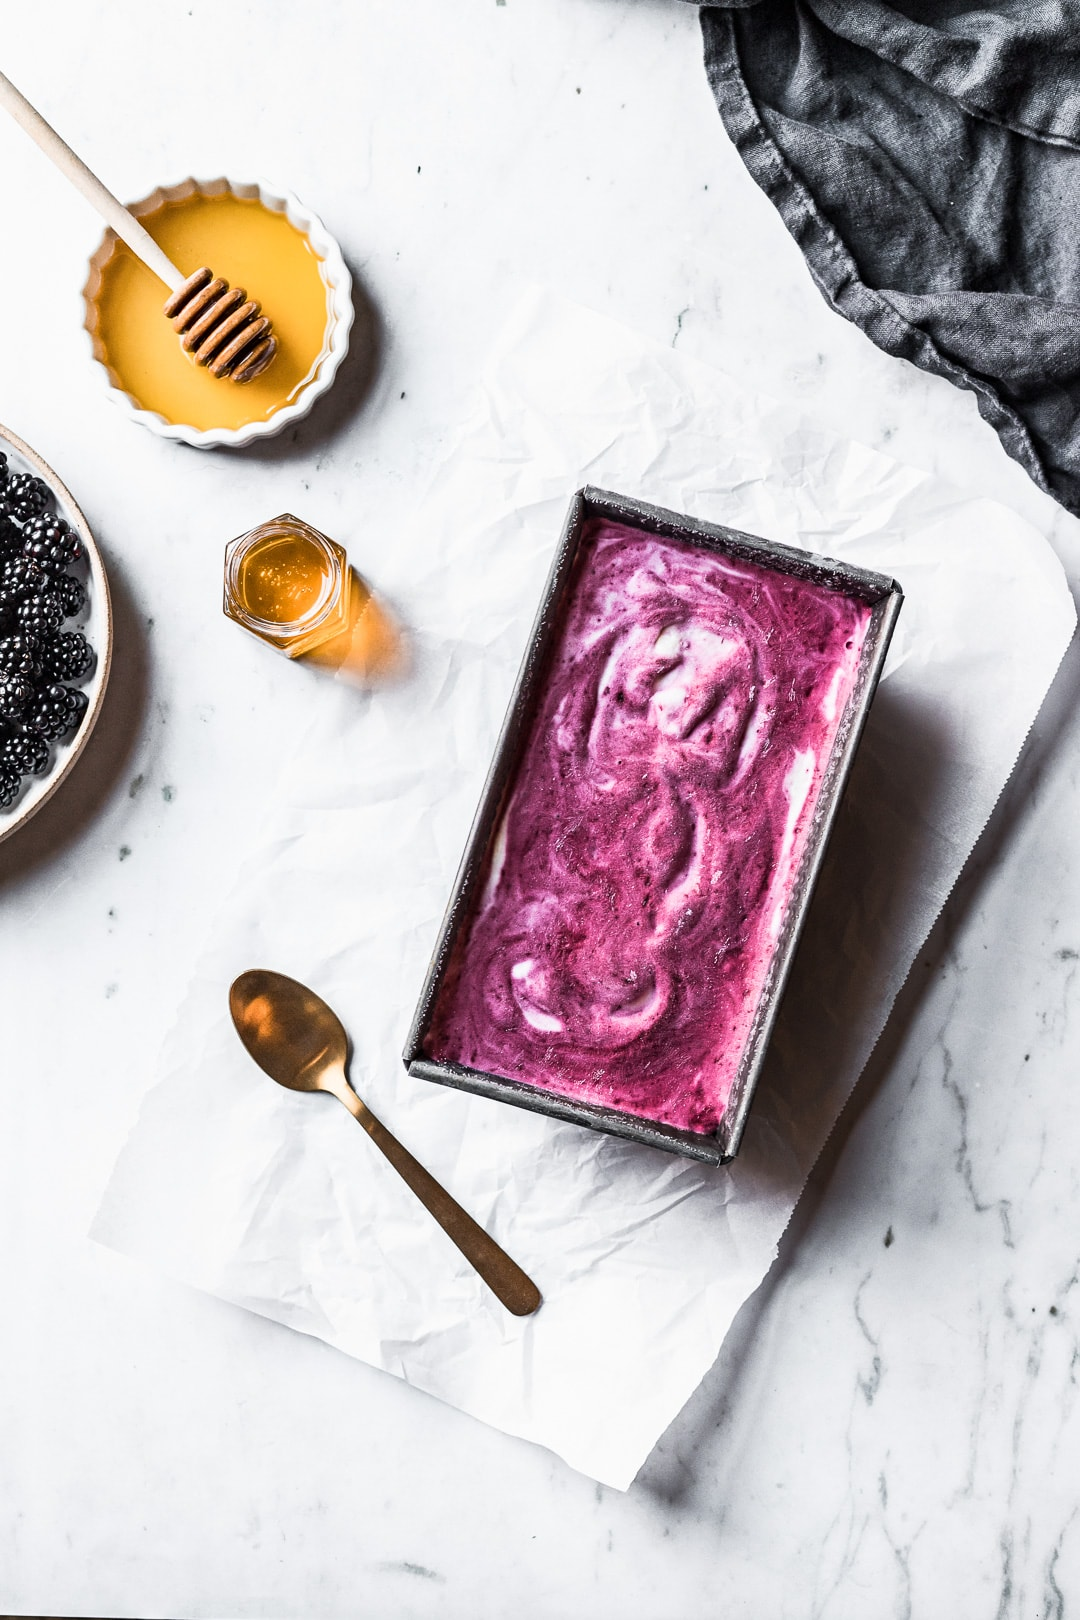 Purple and white swirled ice cream in a container on a marble background with blackberries and honey nearby